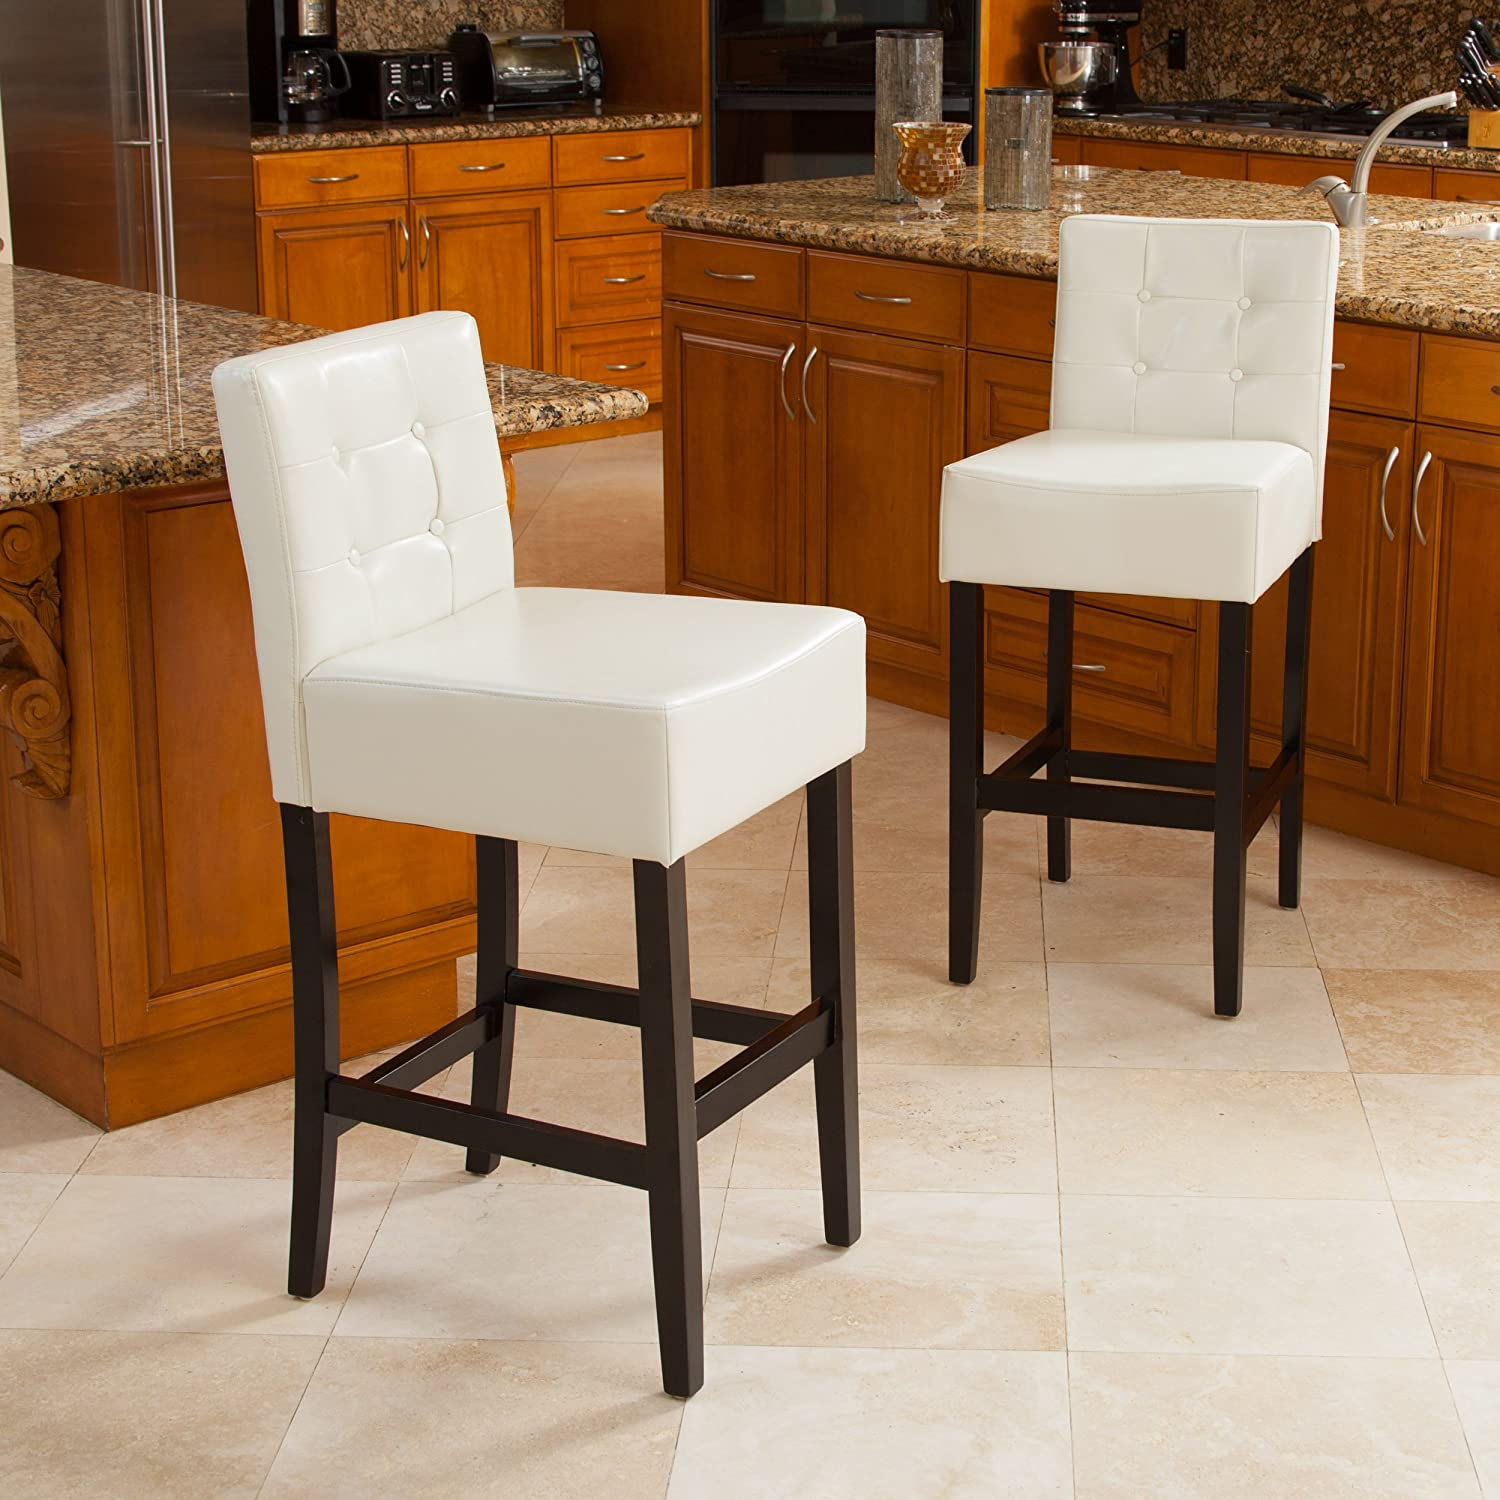 Amazon com gregory ivory tufted leather back bar stool set of 2 kitchen dining